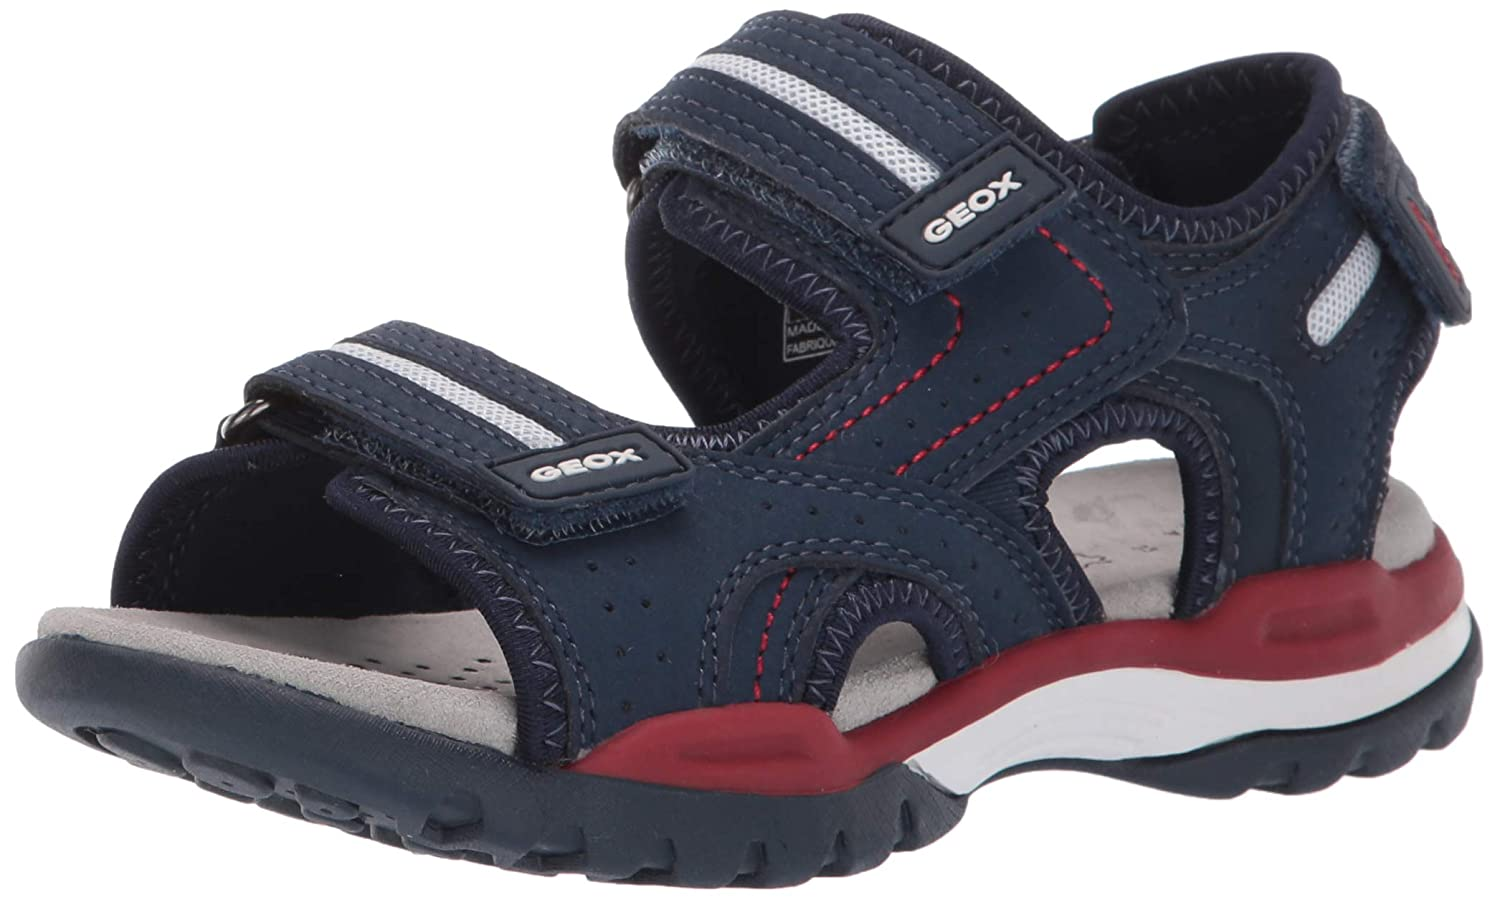 Geox Junior Borealis Boys Fisherman Sandals